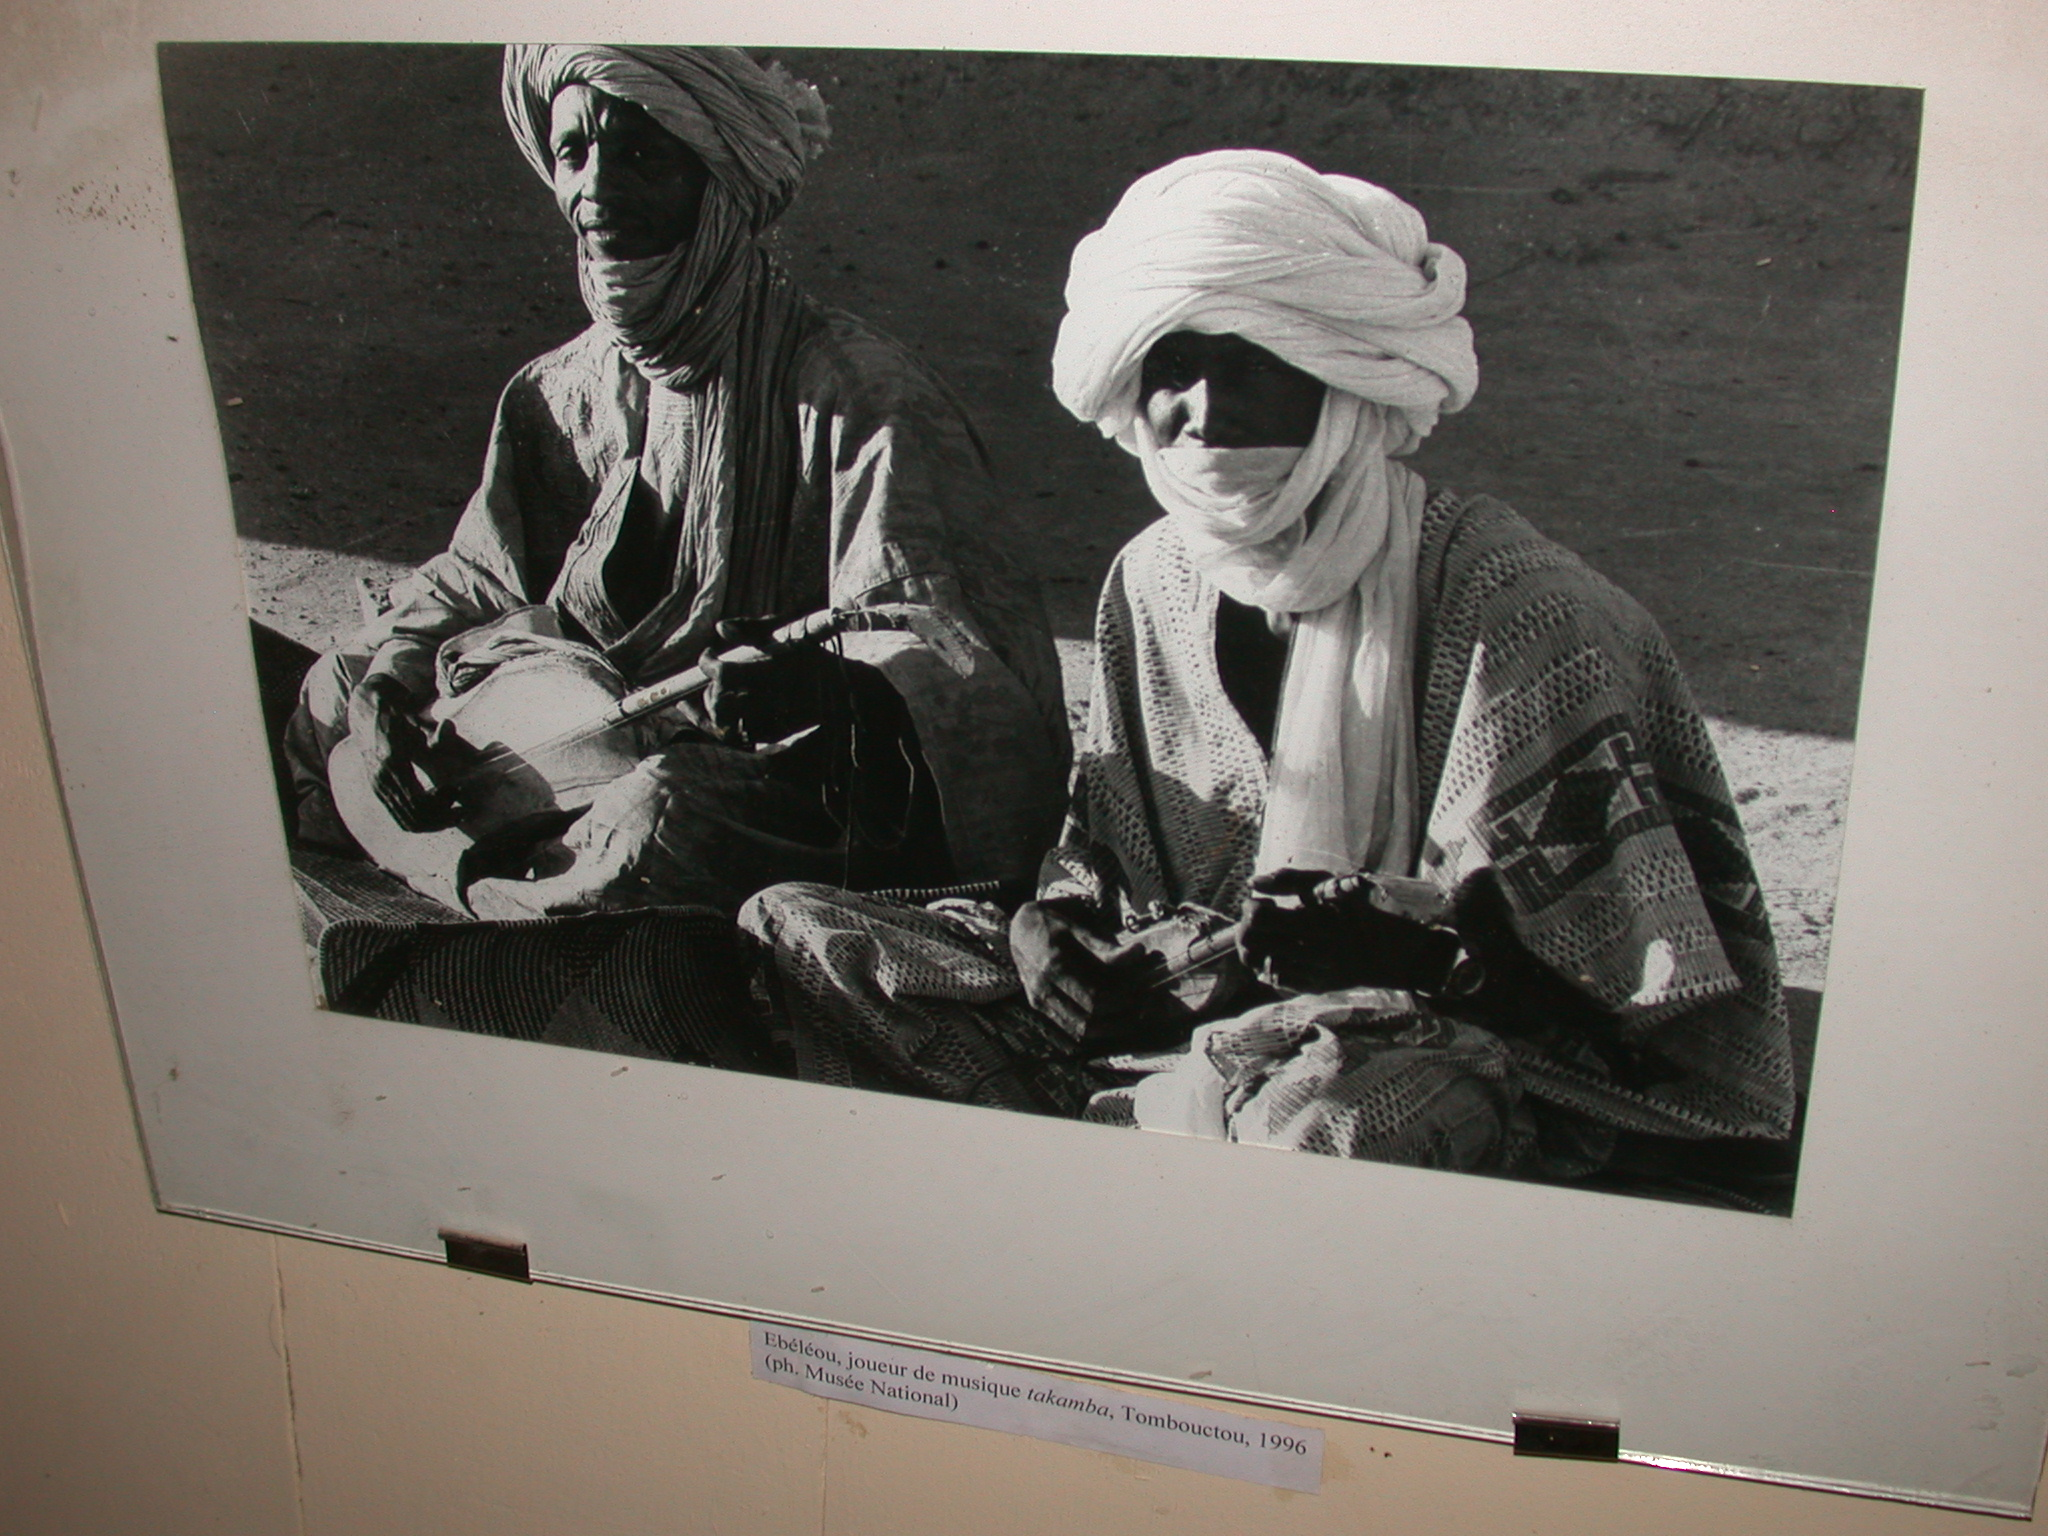 Photo of Ebéléou, Player of Takamba Music, Timbuktu, 1996, Timbuktu Ethnological Museum, Timbuktu, Mali